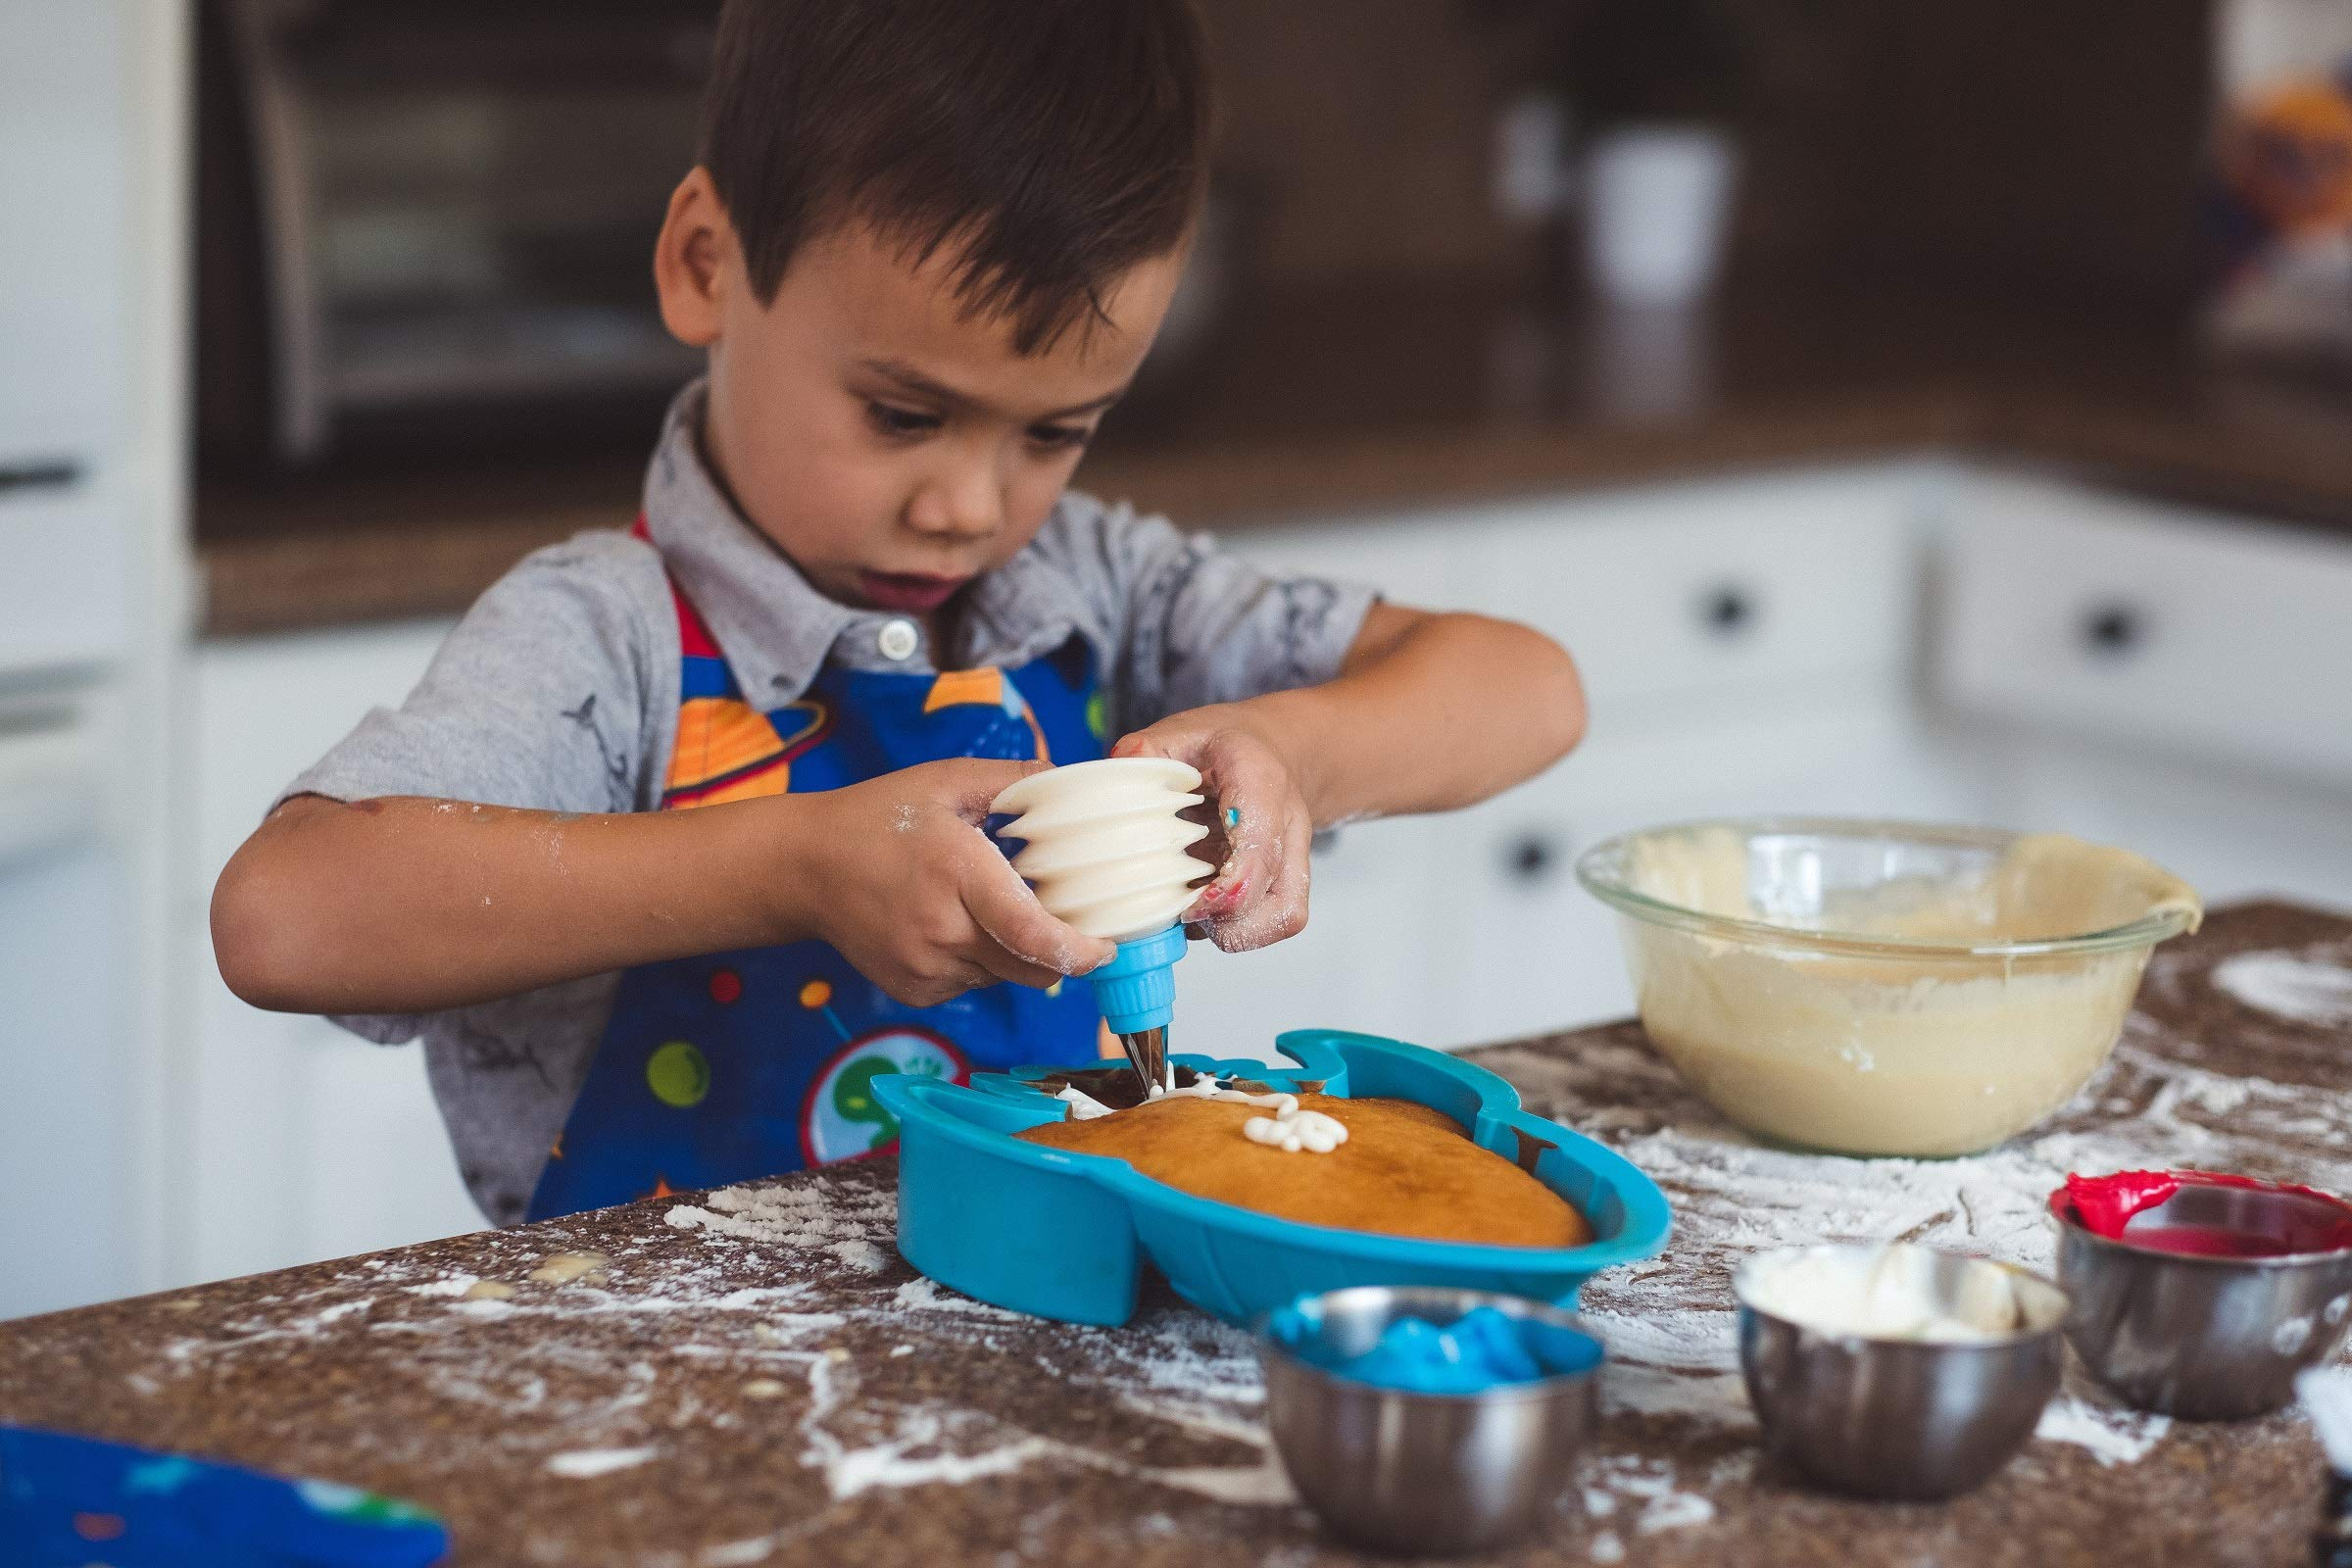 Handstand Kitchen Out of this World 7-piece Real Rocket Shaped Cake Baking Set with Recipes for Kids by Handstand Kitchen (Image #3)